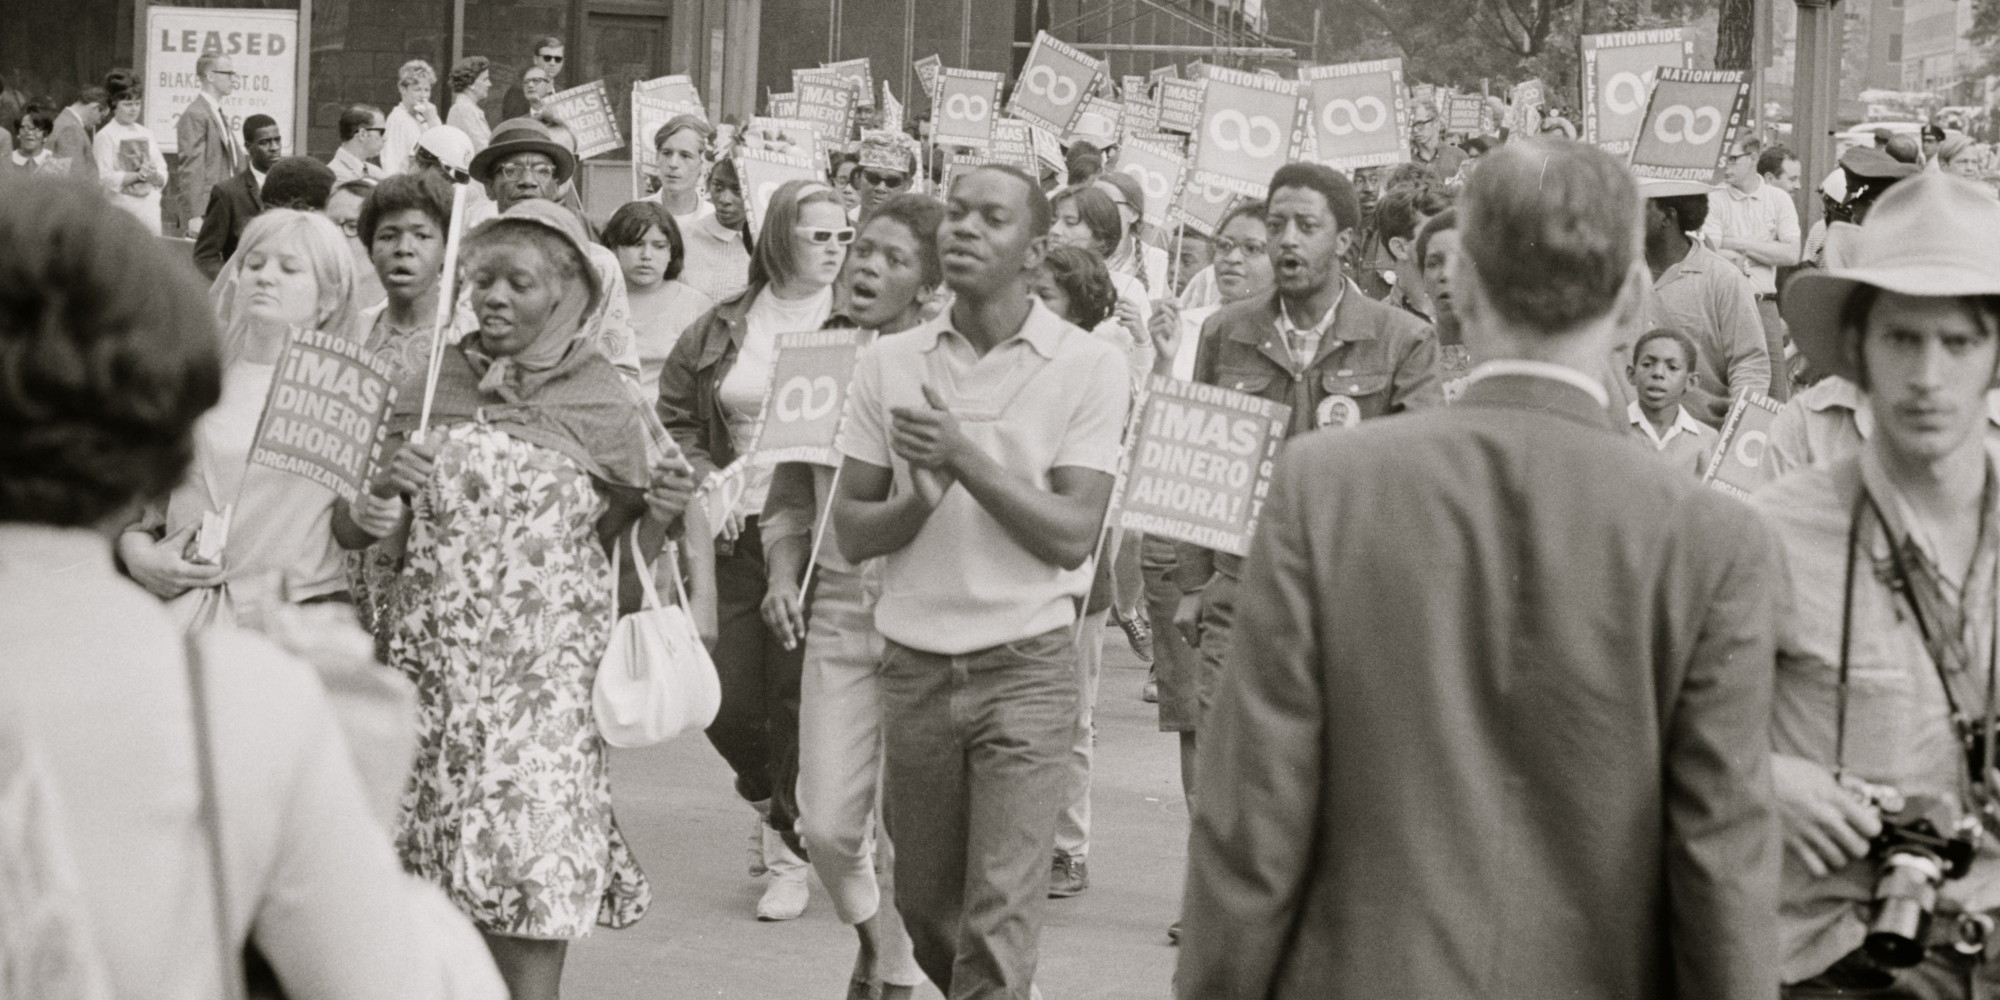 how the cold war promoted the civil rights movement in america and how it promoted change Abstract: this chapter examines decolonization during the cold war  the rise  of the american civil rights movement, which challenged the  offered king  valuable insights about the development of a strategy for promoting change.